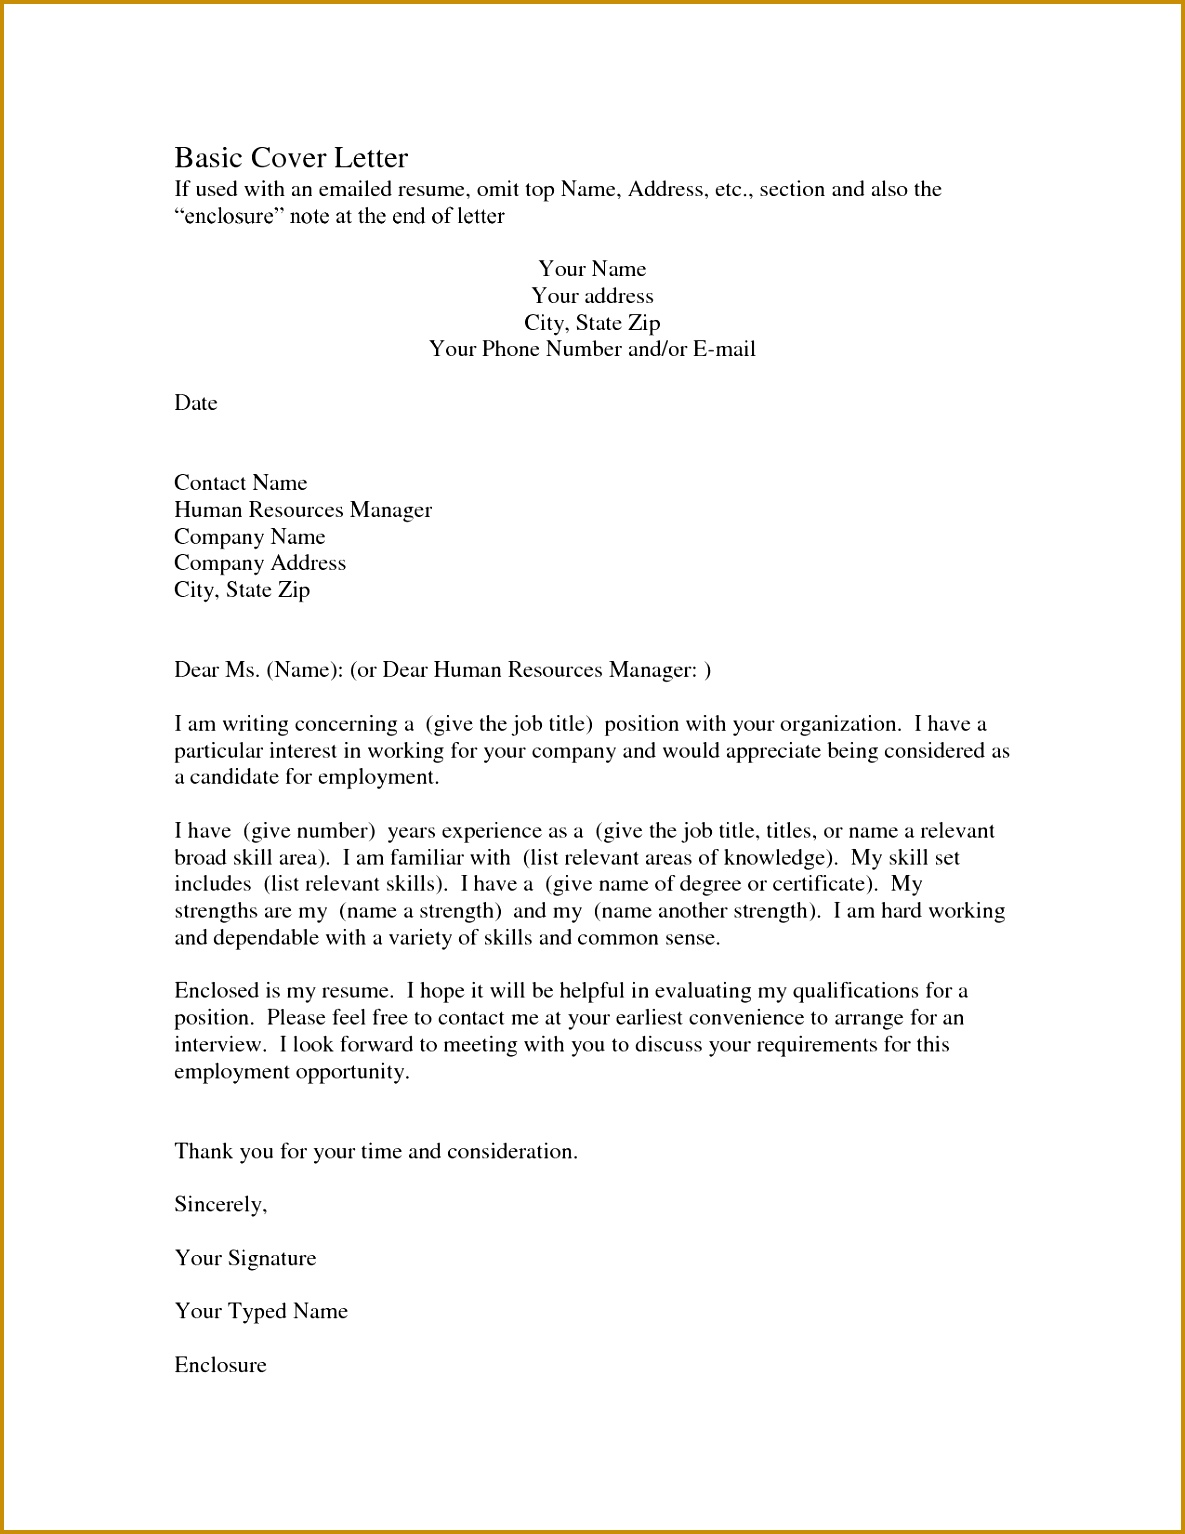 34 Fresh What Does Cover Letter Mean 15341185